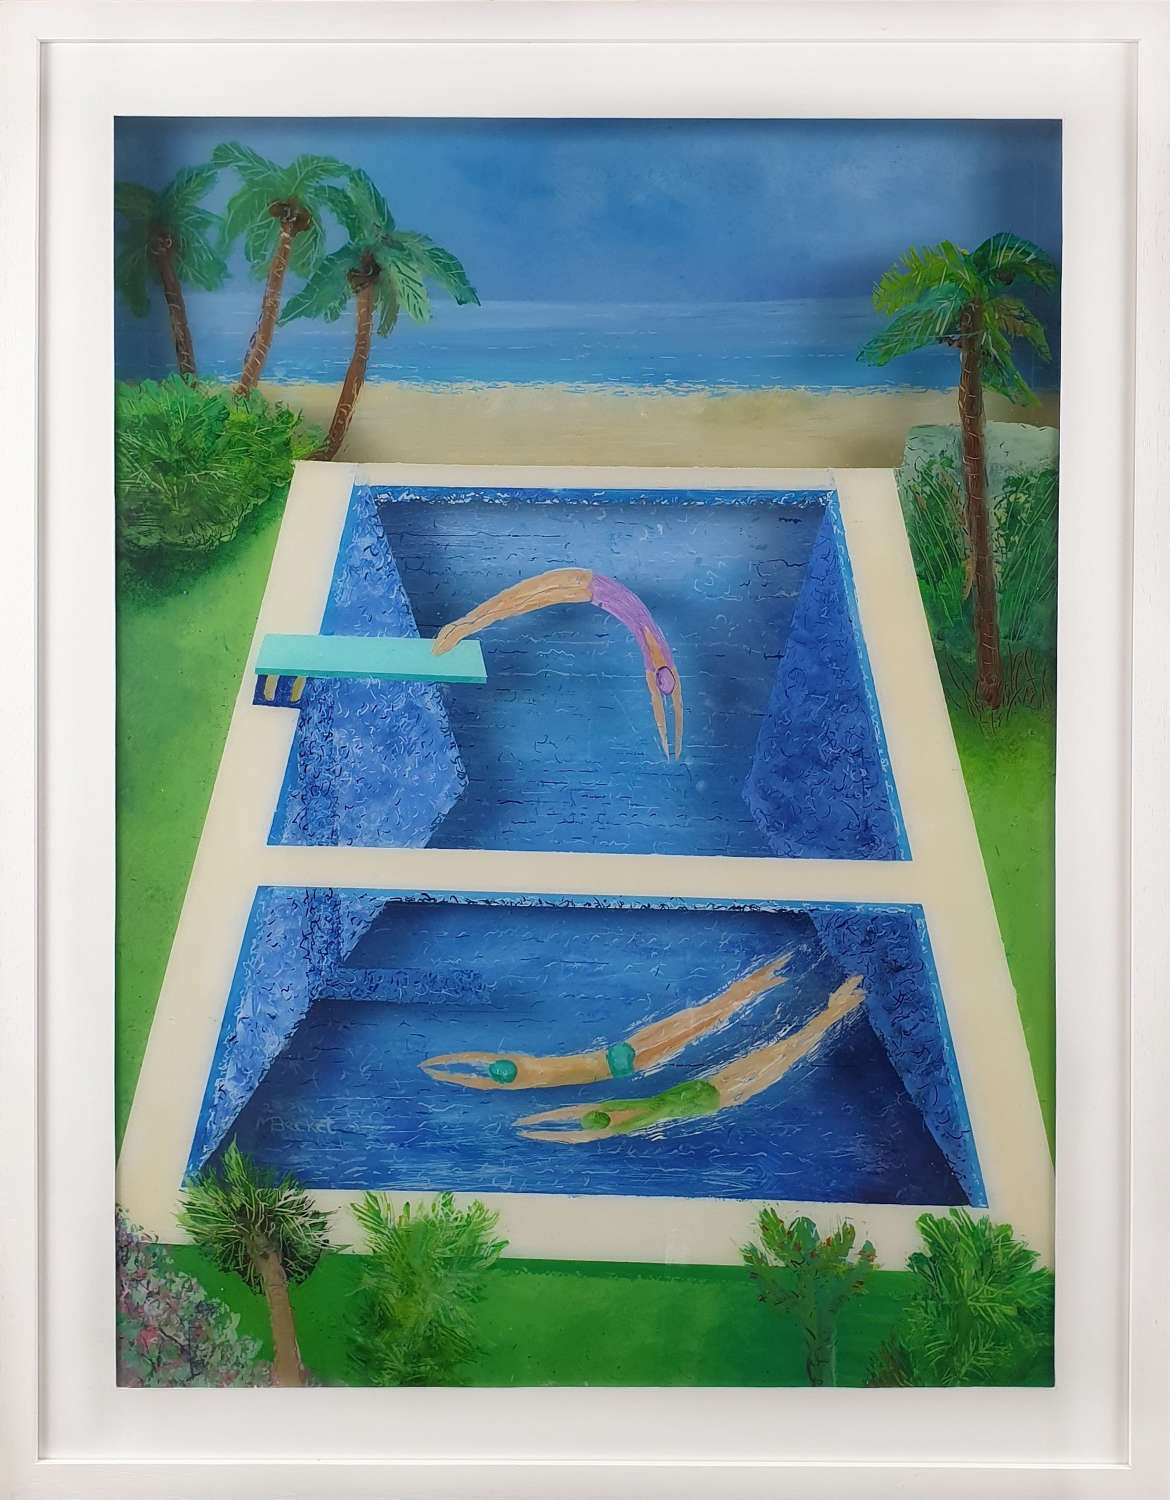 Tropical Pool - Mike Becket